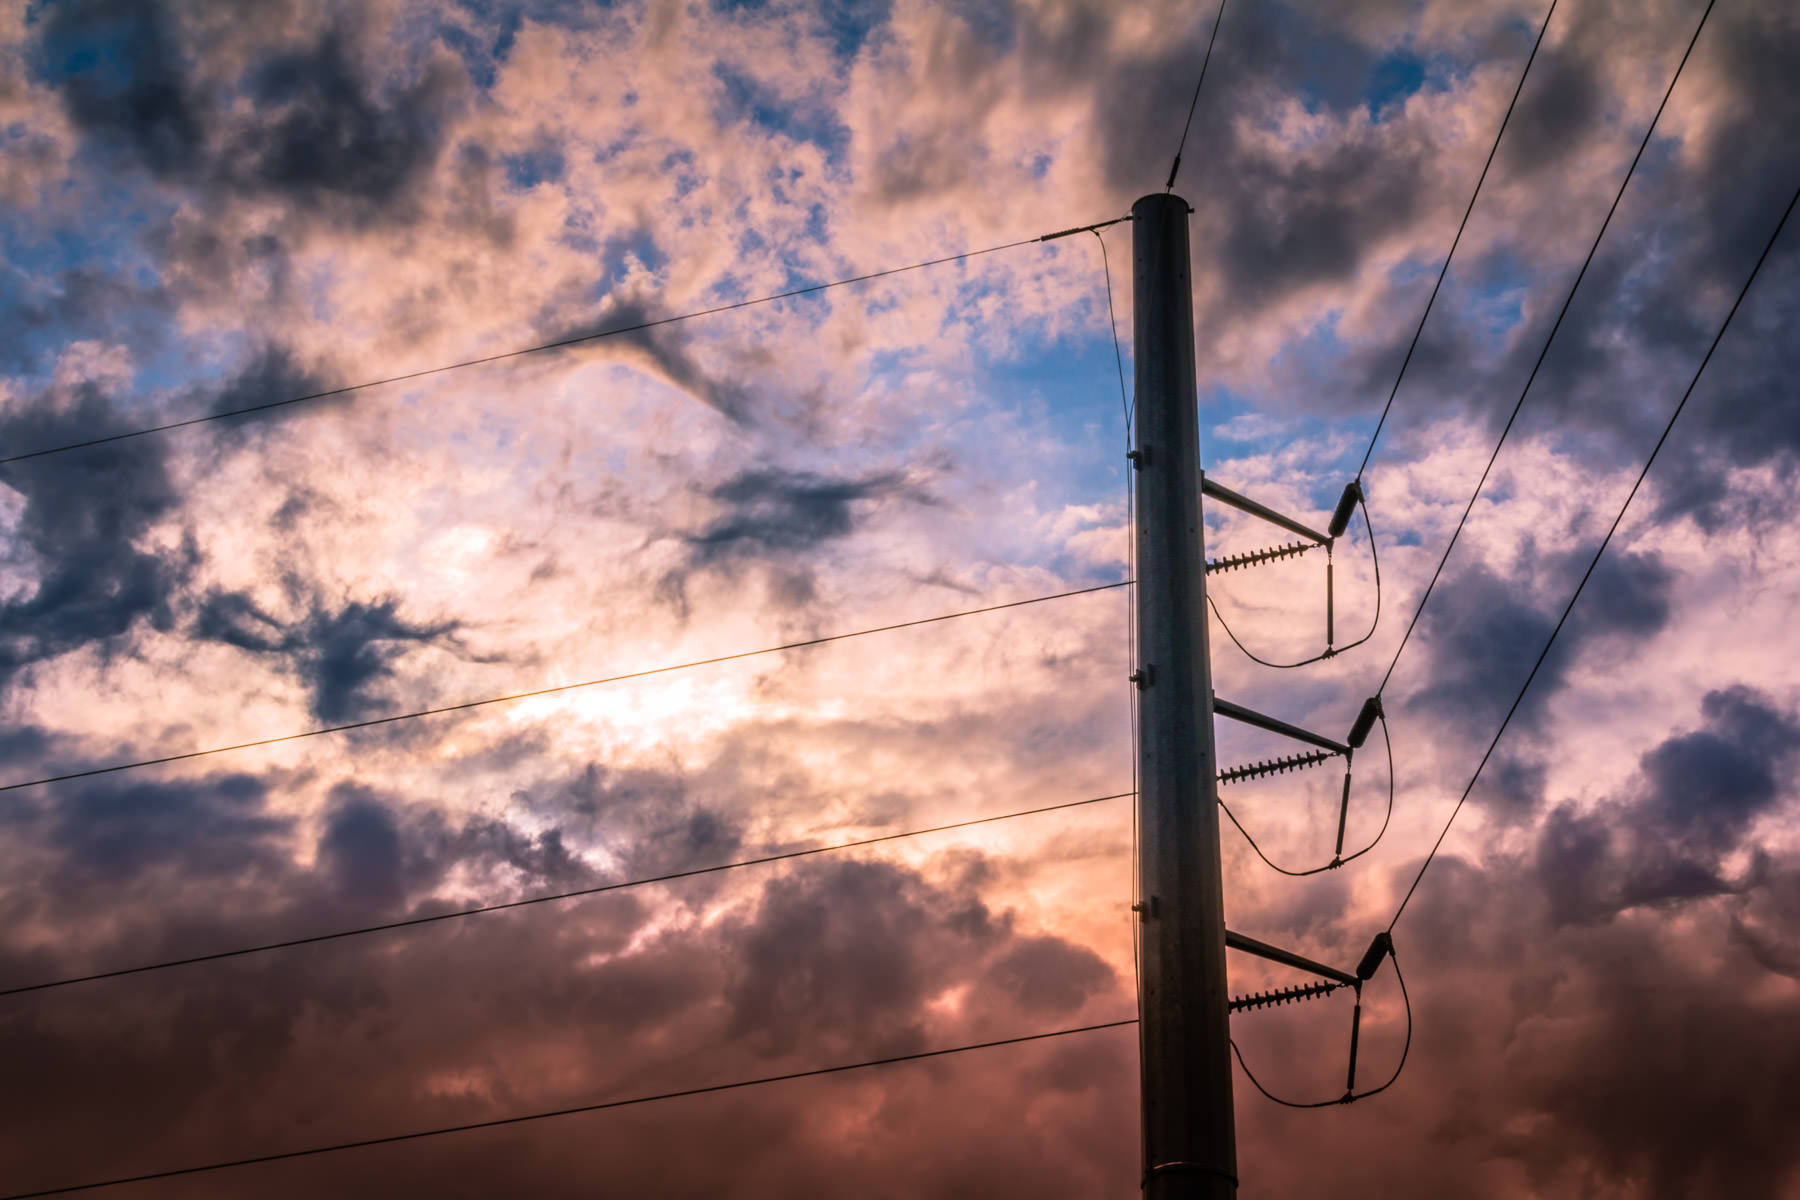 Power lines against a stormy sky, spotted in Richardson, Texas.